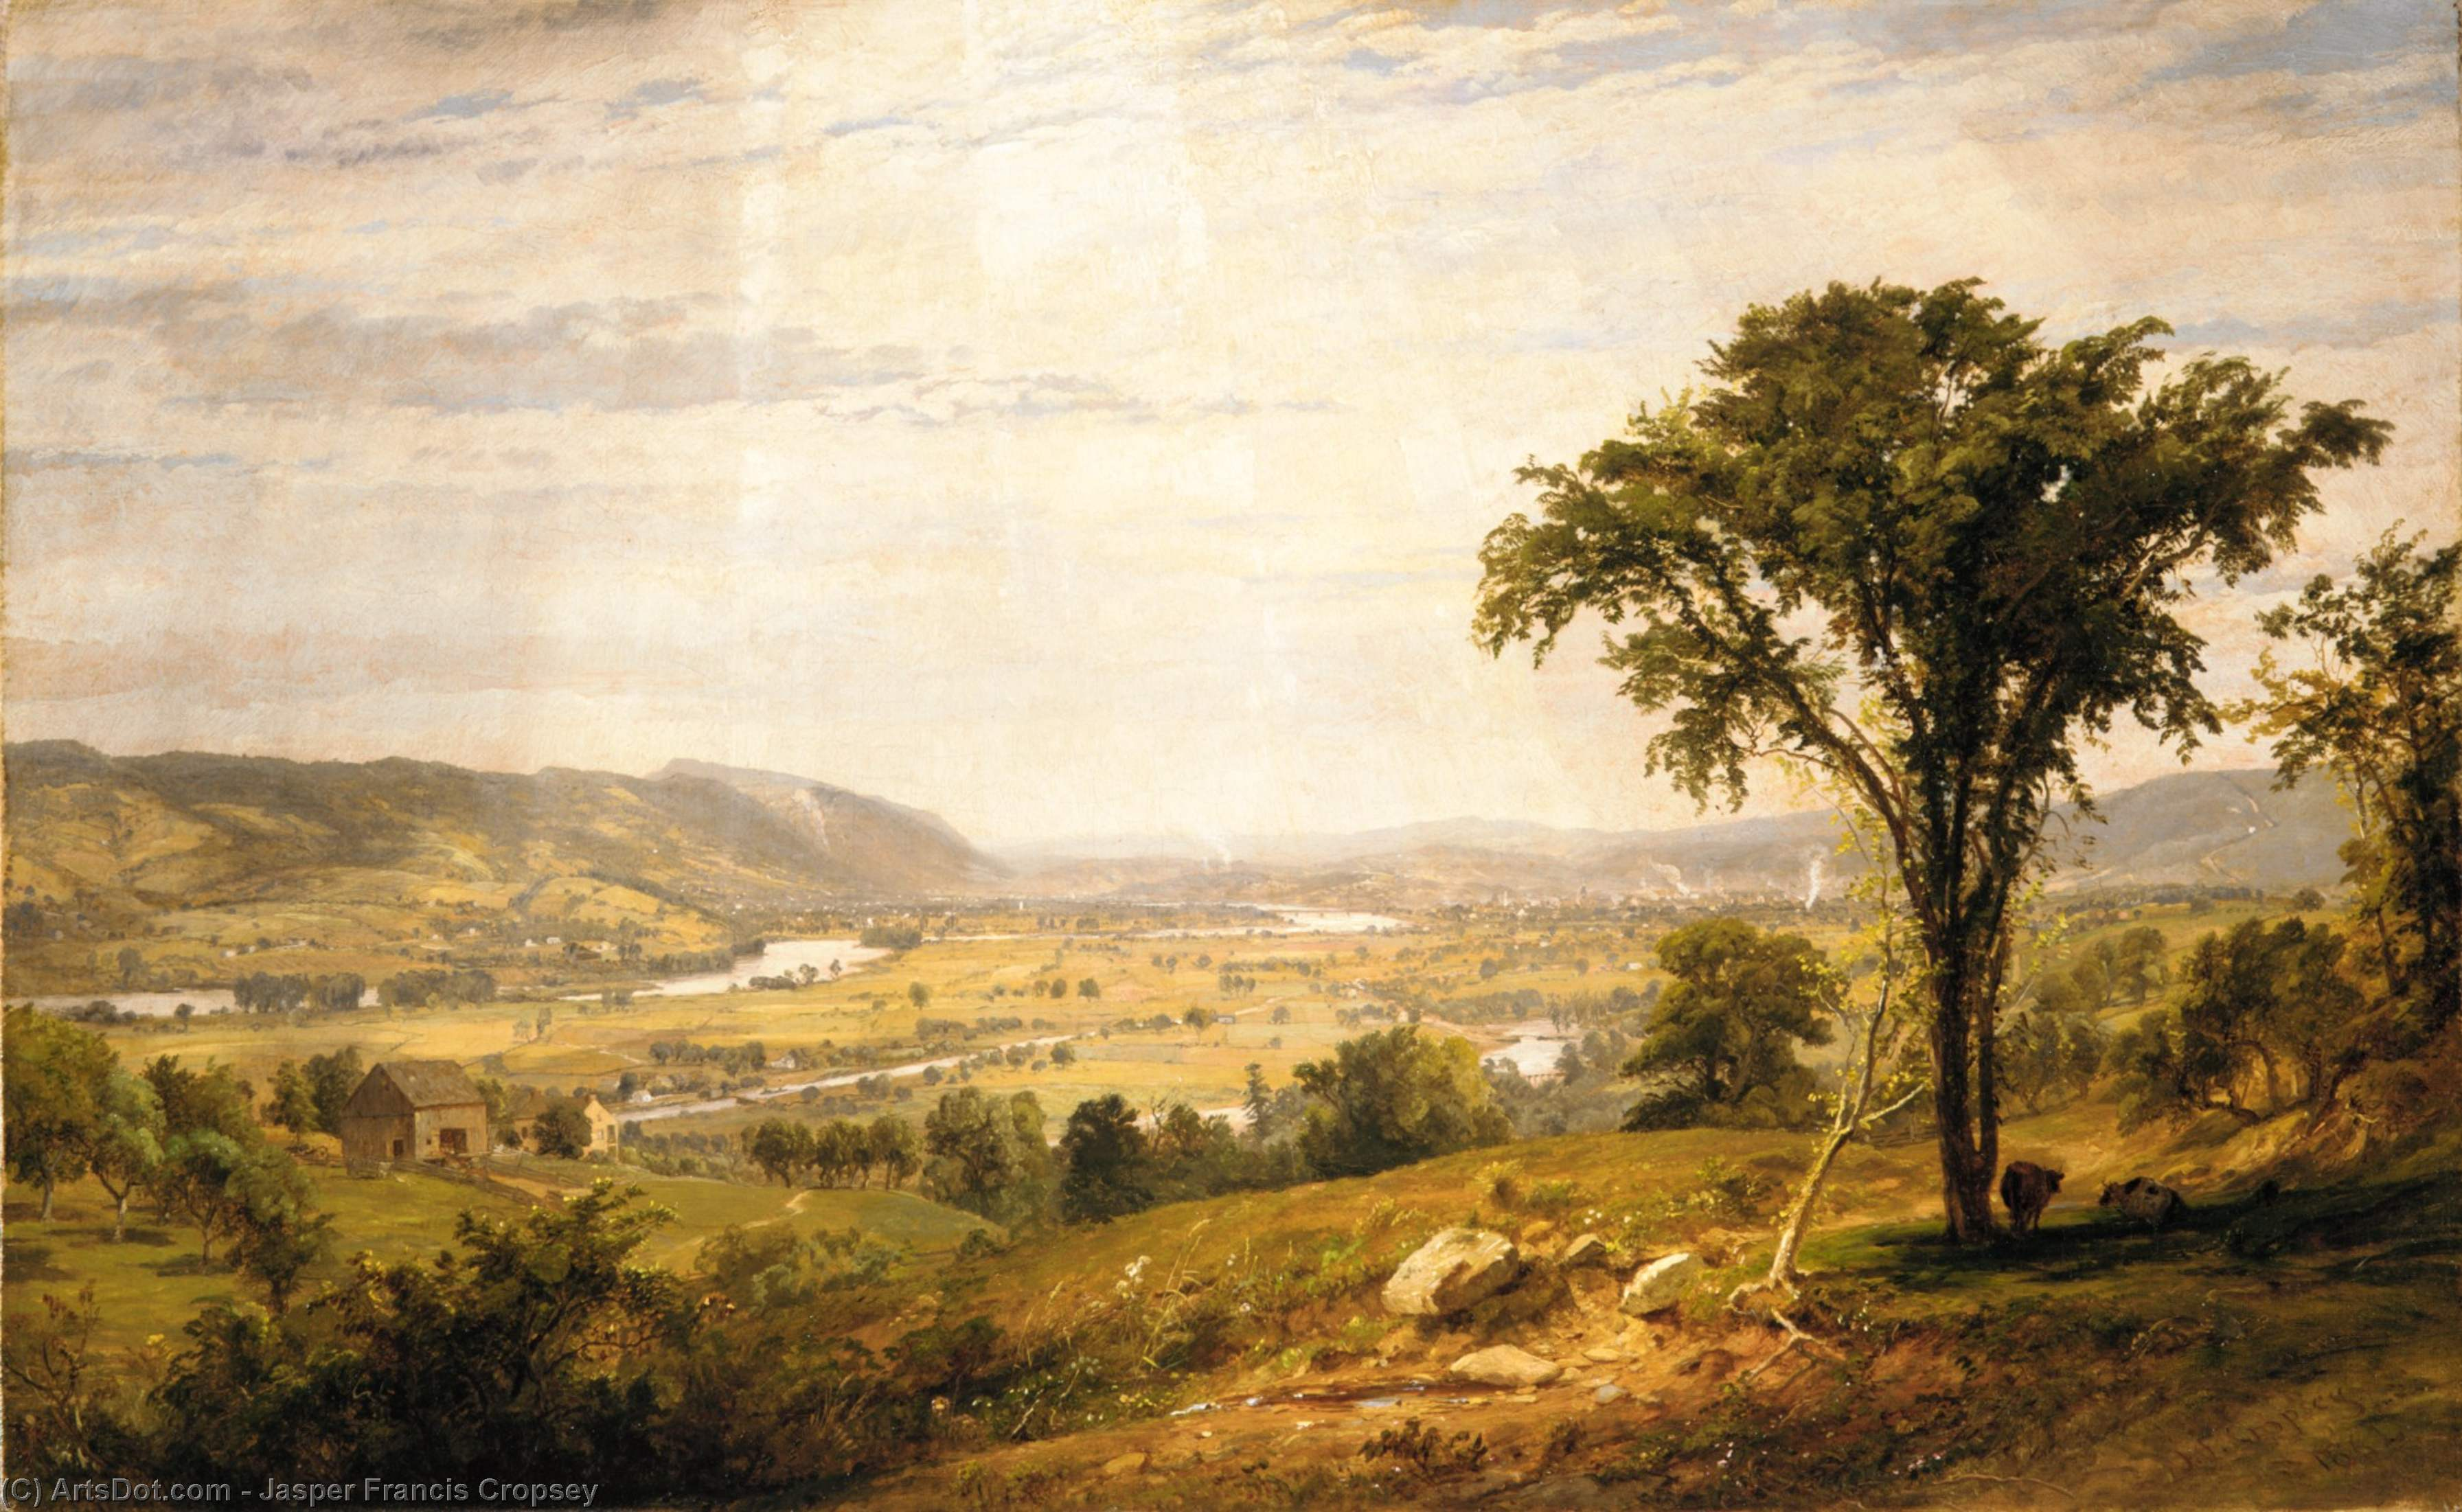 wyoming valley pennsylvania by Jasper Francis Cropsey (1823-1900, United States)